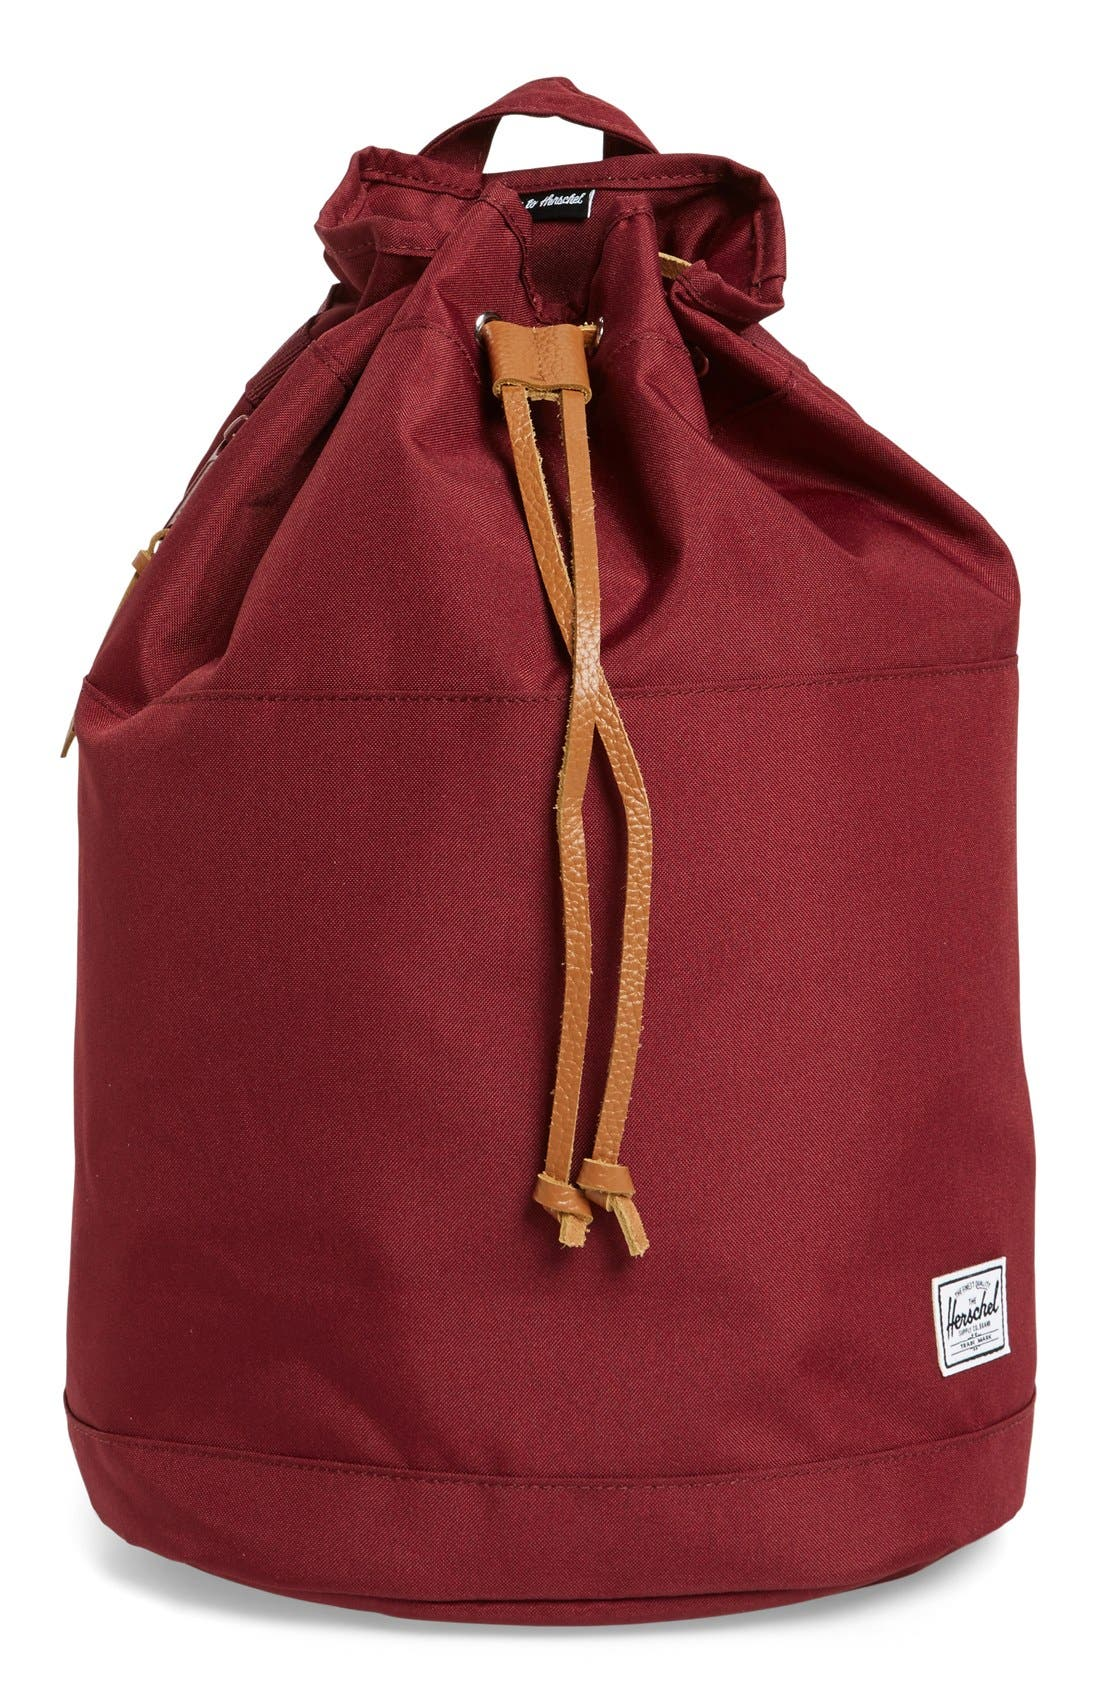 Main Image - Herschel Supply Co. 'Hanson' Canvas Backpack